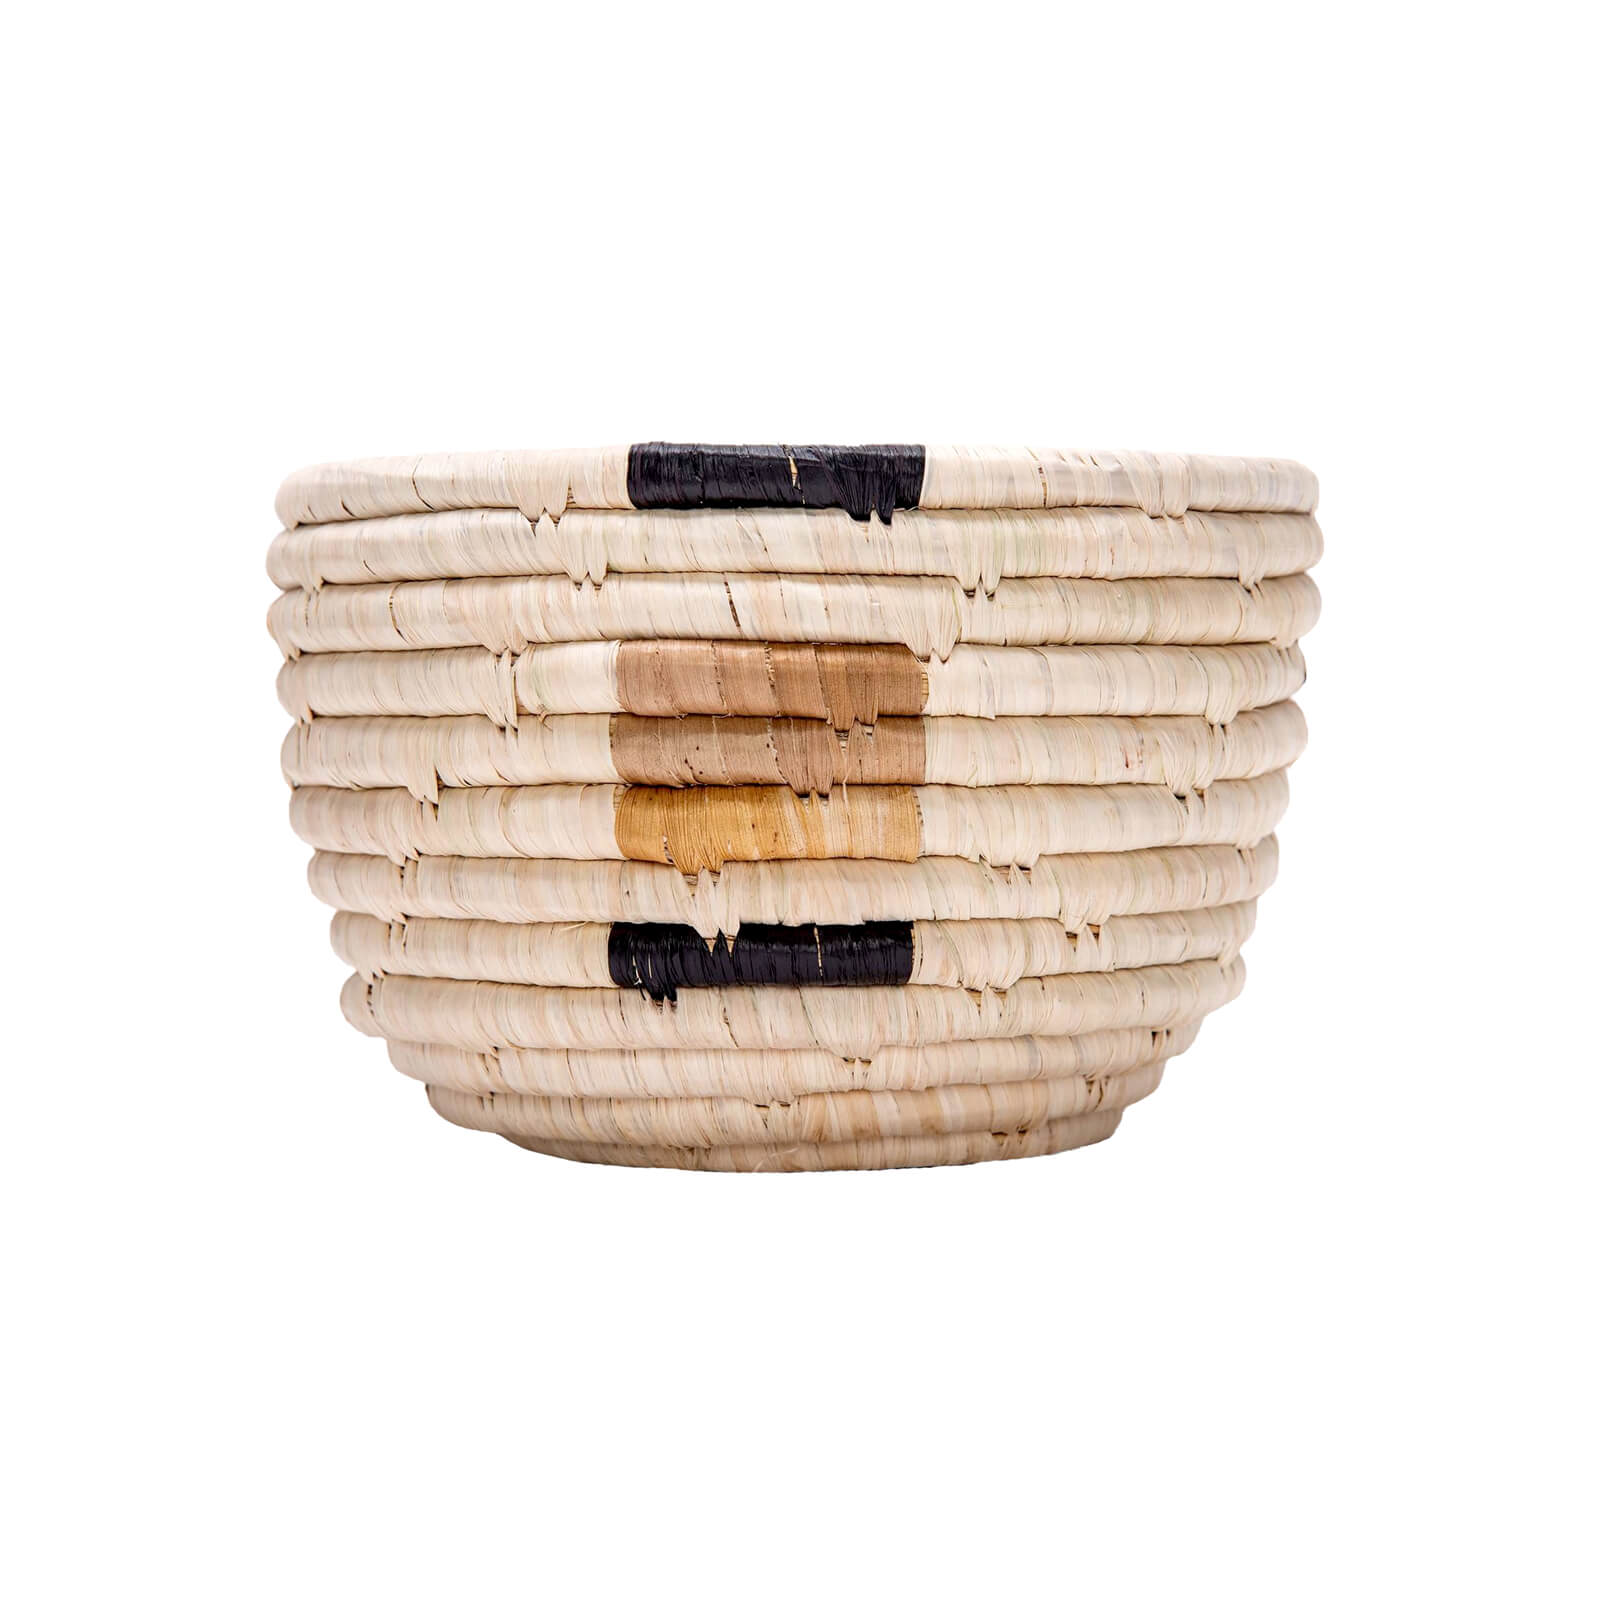 Deep Woven Bowl with Banana Leaf Accents - Small